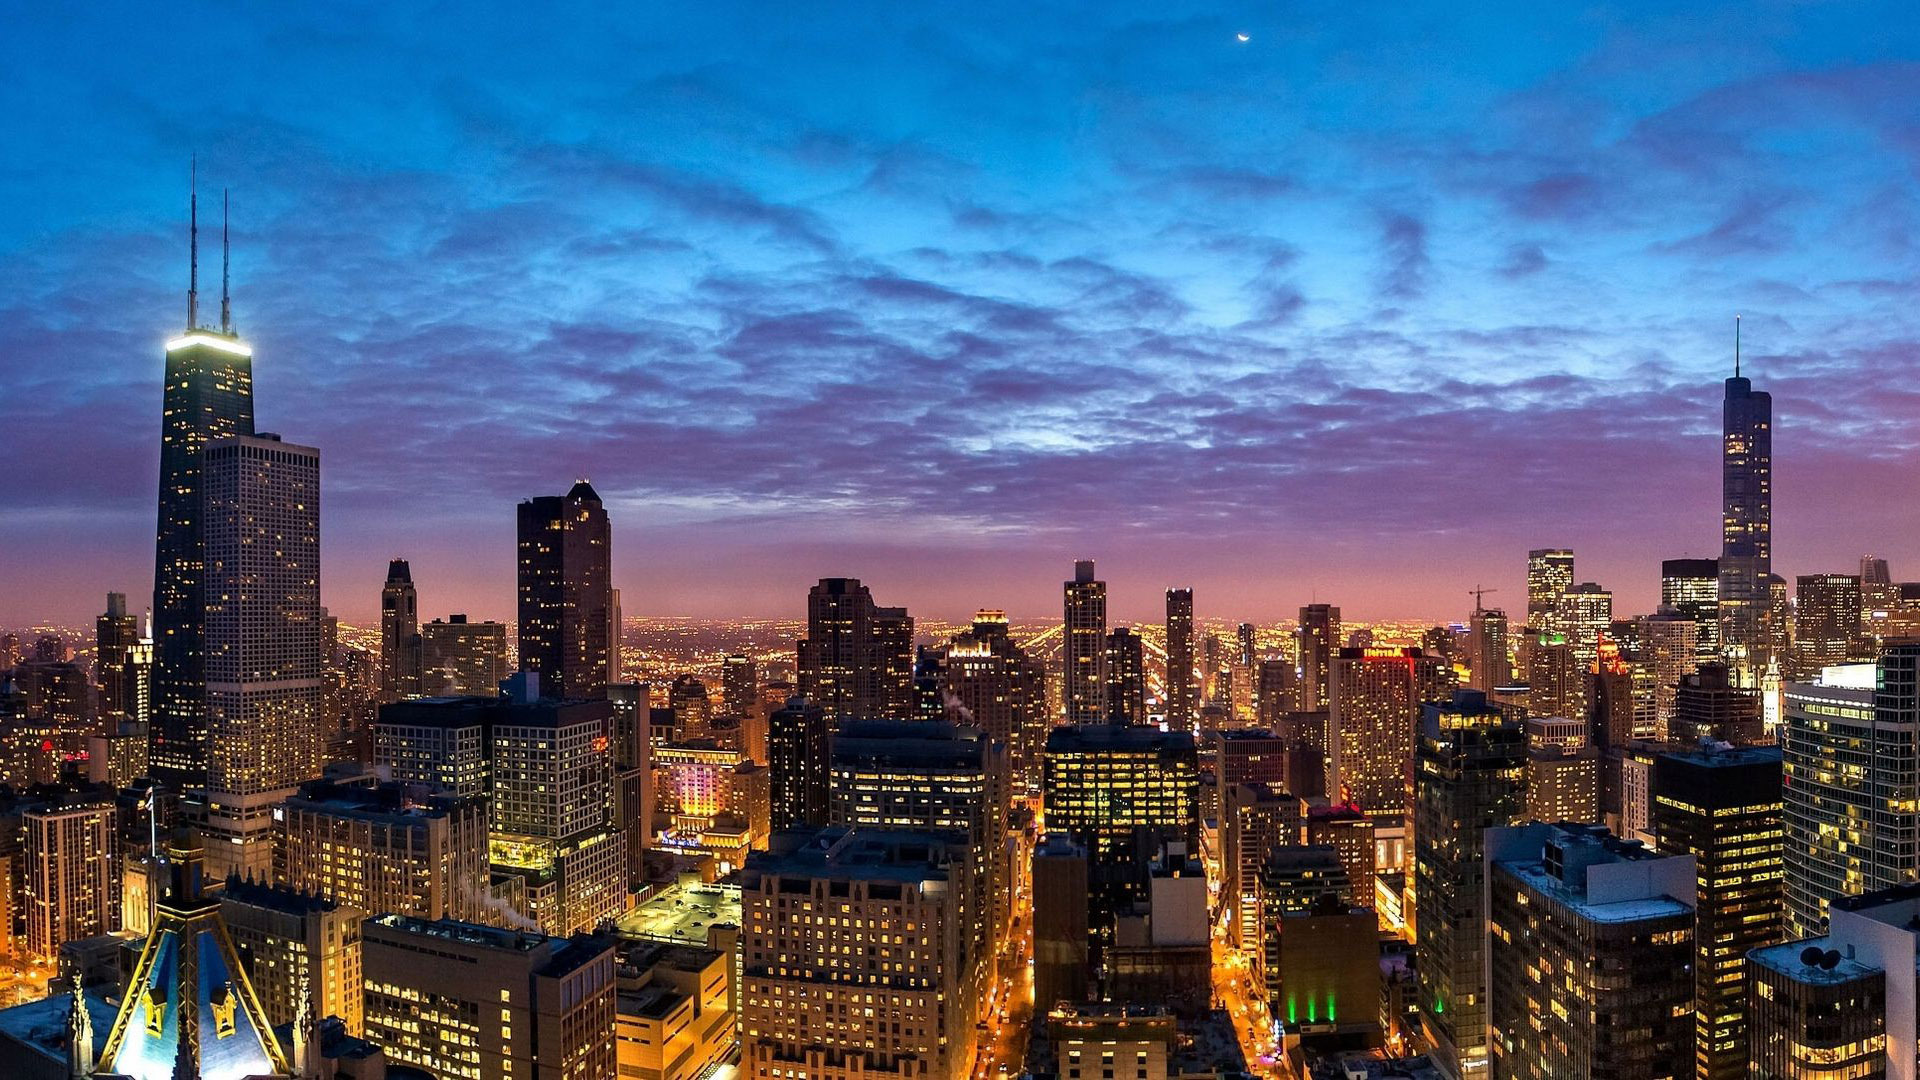 Chicago cityscape wallpaper   1206845 1920x1080